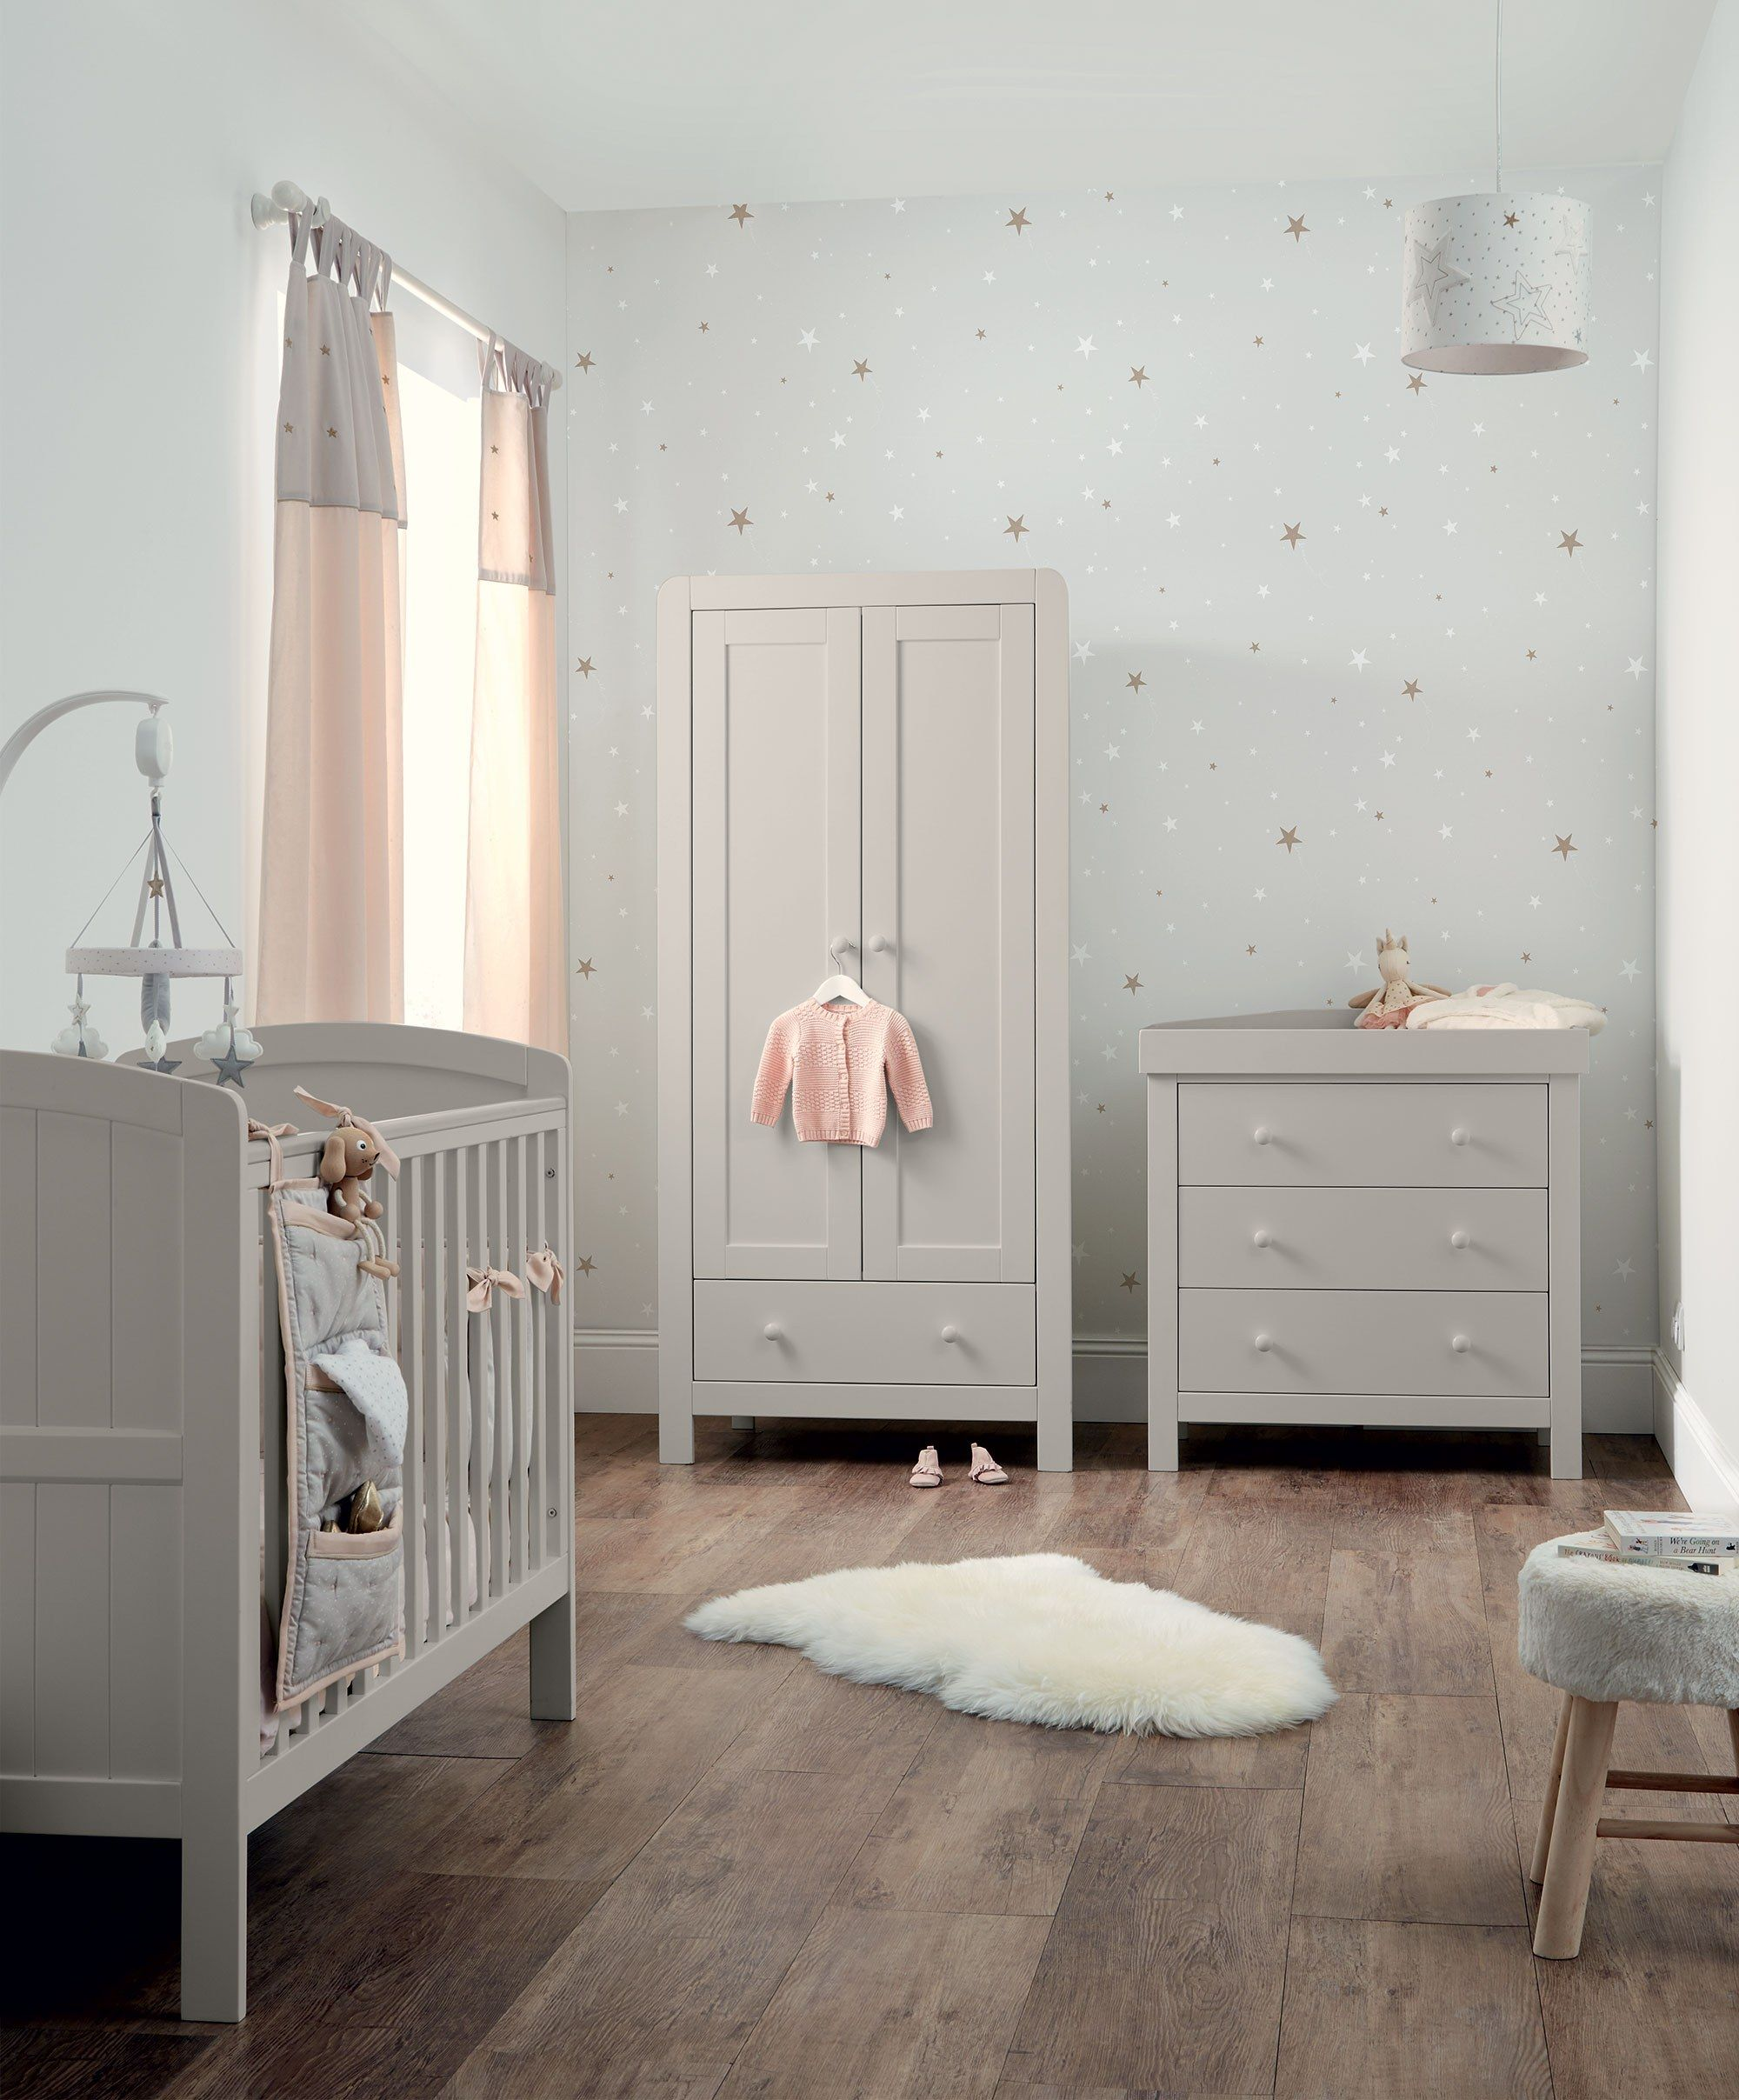 Dover 3 Piece Cot Range With Dresser And Wardrobe Grey In 2020 Nursery Furniture Sets Baby Furniture Sets Nursery Furniture